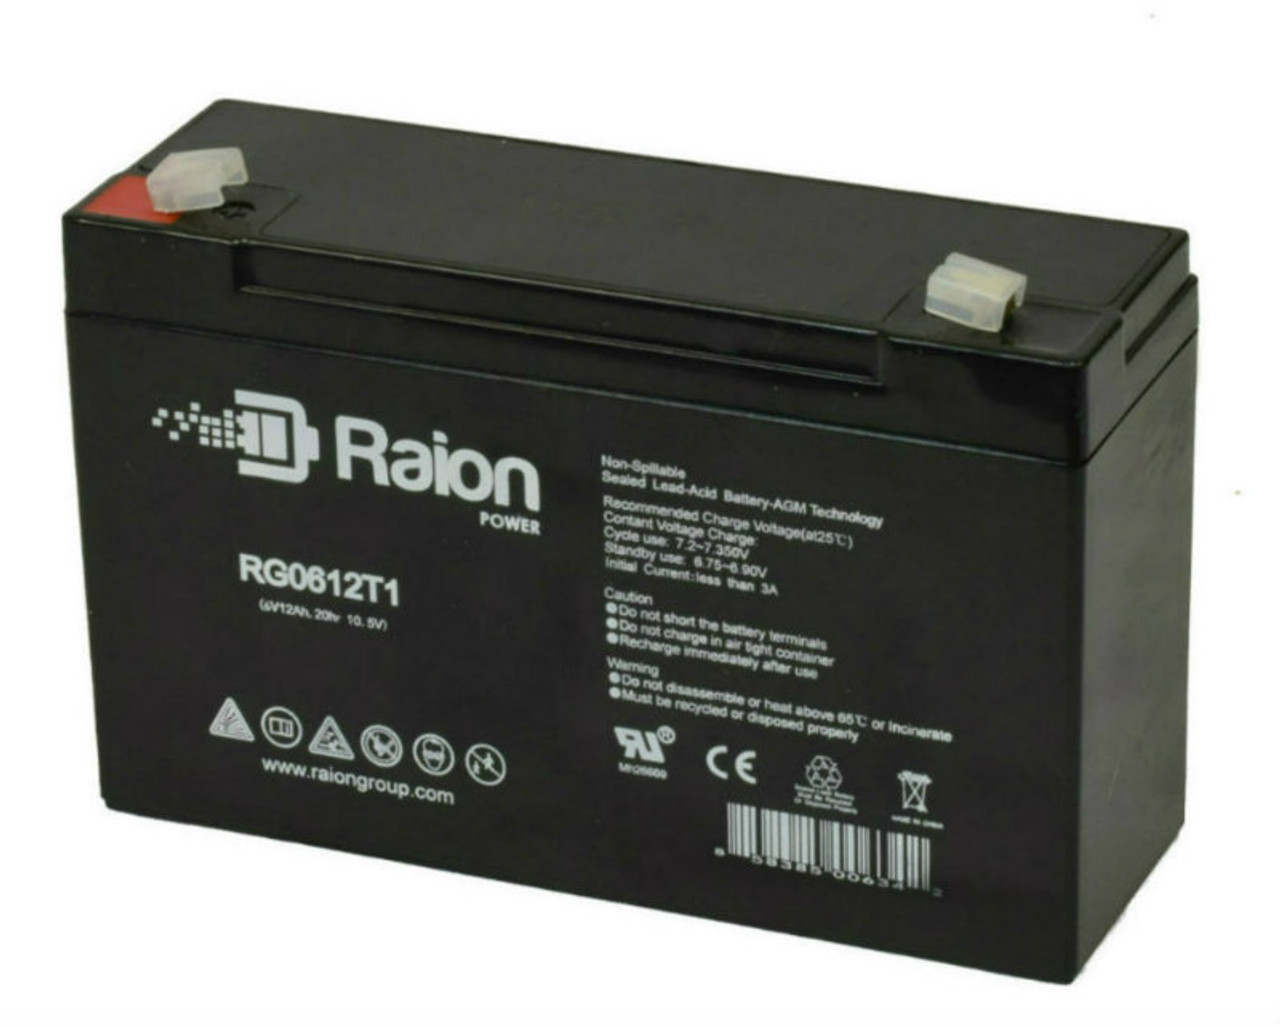 Raion Power RG06120T1 Replacement Battery Pack for Dual-Lite 12-263 / 12263 / 0120263 emergency light